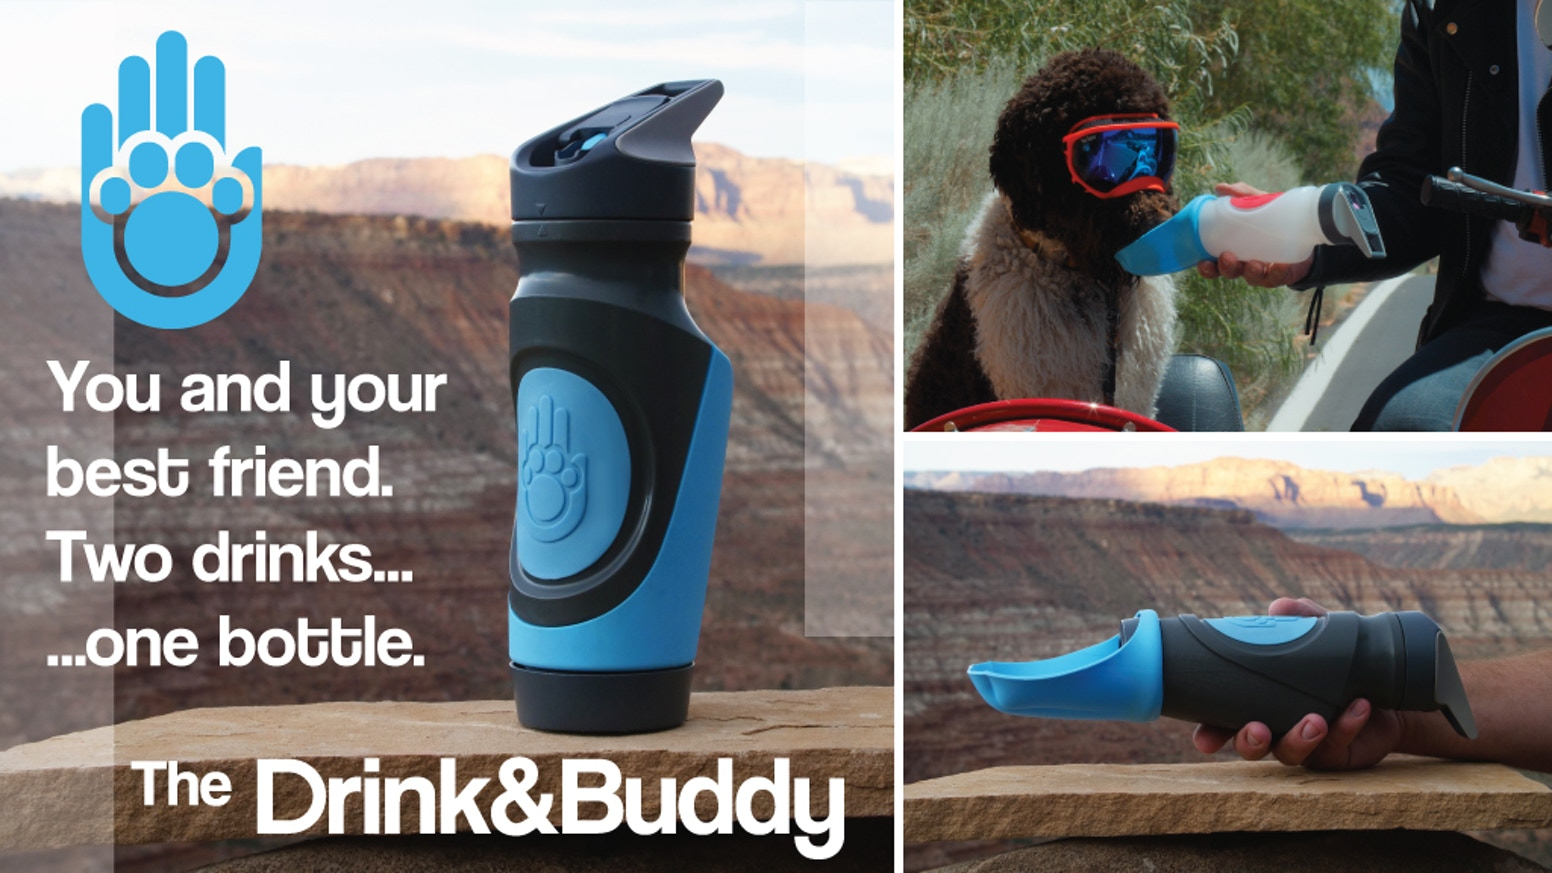 The world's first hygienic, multi-beverage water bottle that you can share with your pup!